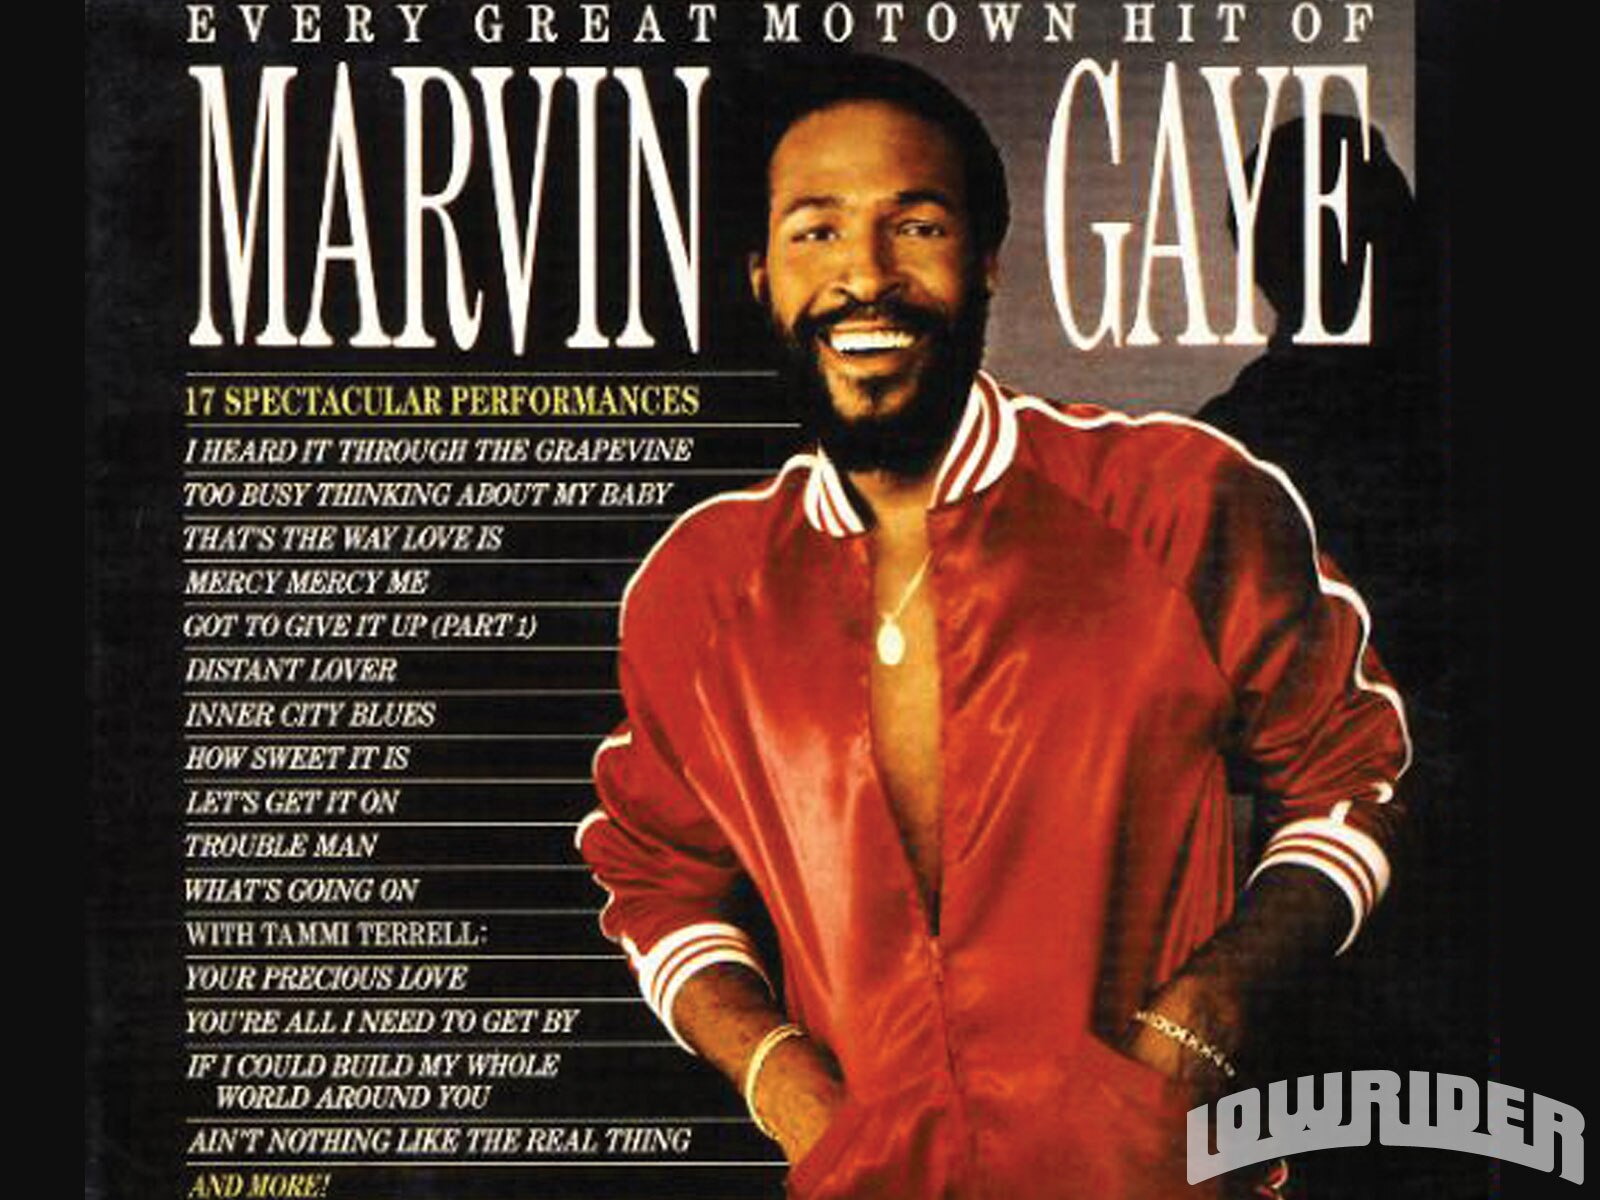 all songs by marvin gay